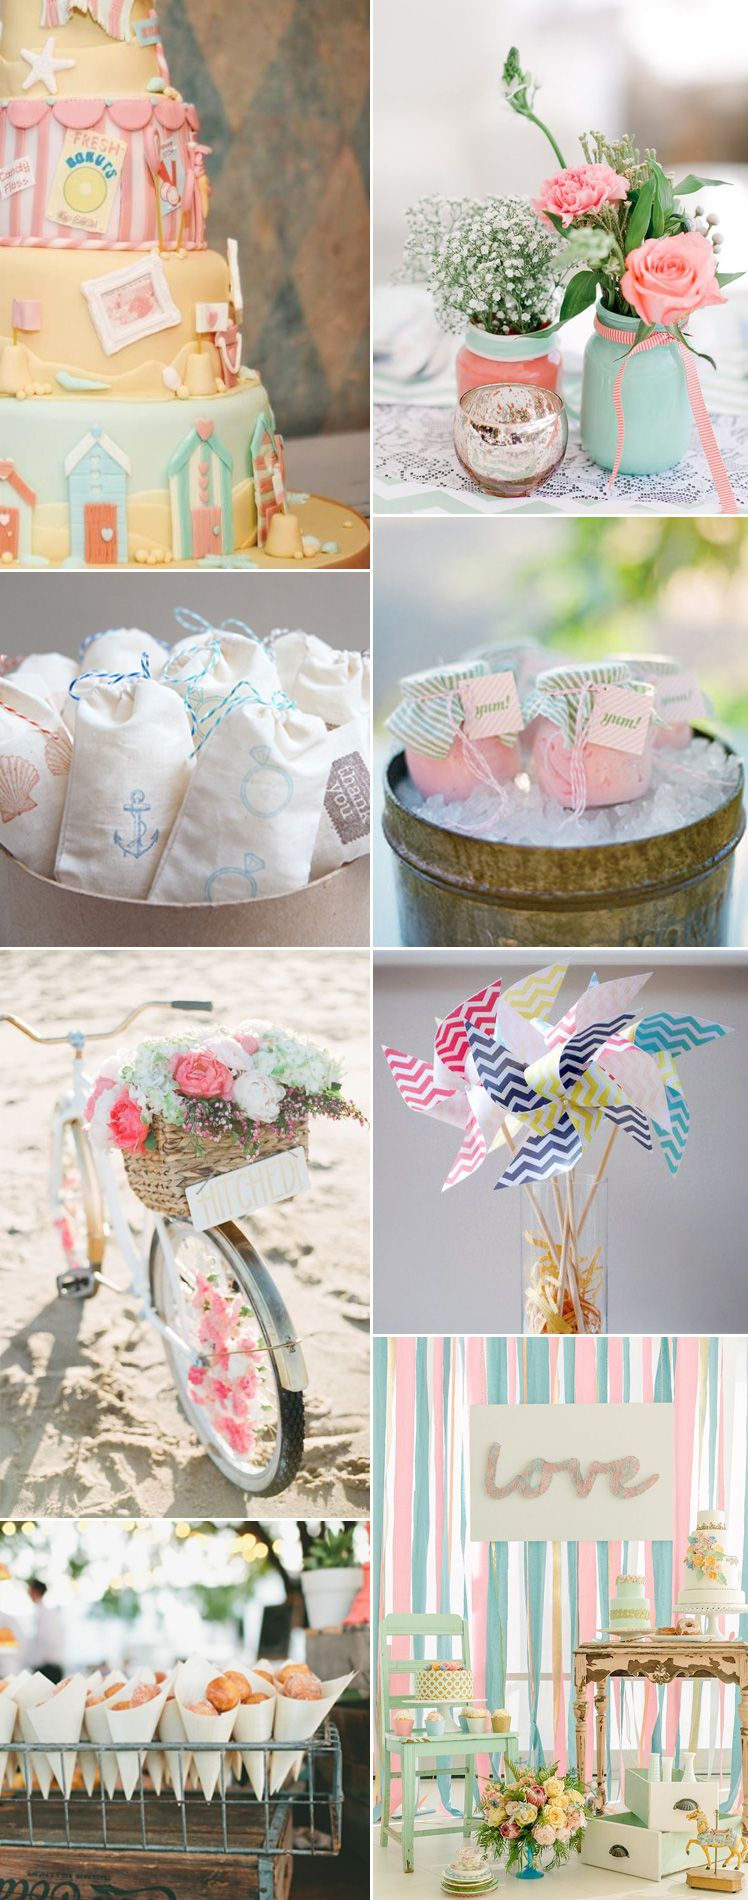 A Quintessential Seaside Wedding For More British Ideas Take Look At Gs Inspiration Glitzy Secrets